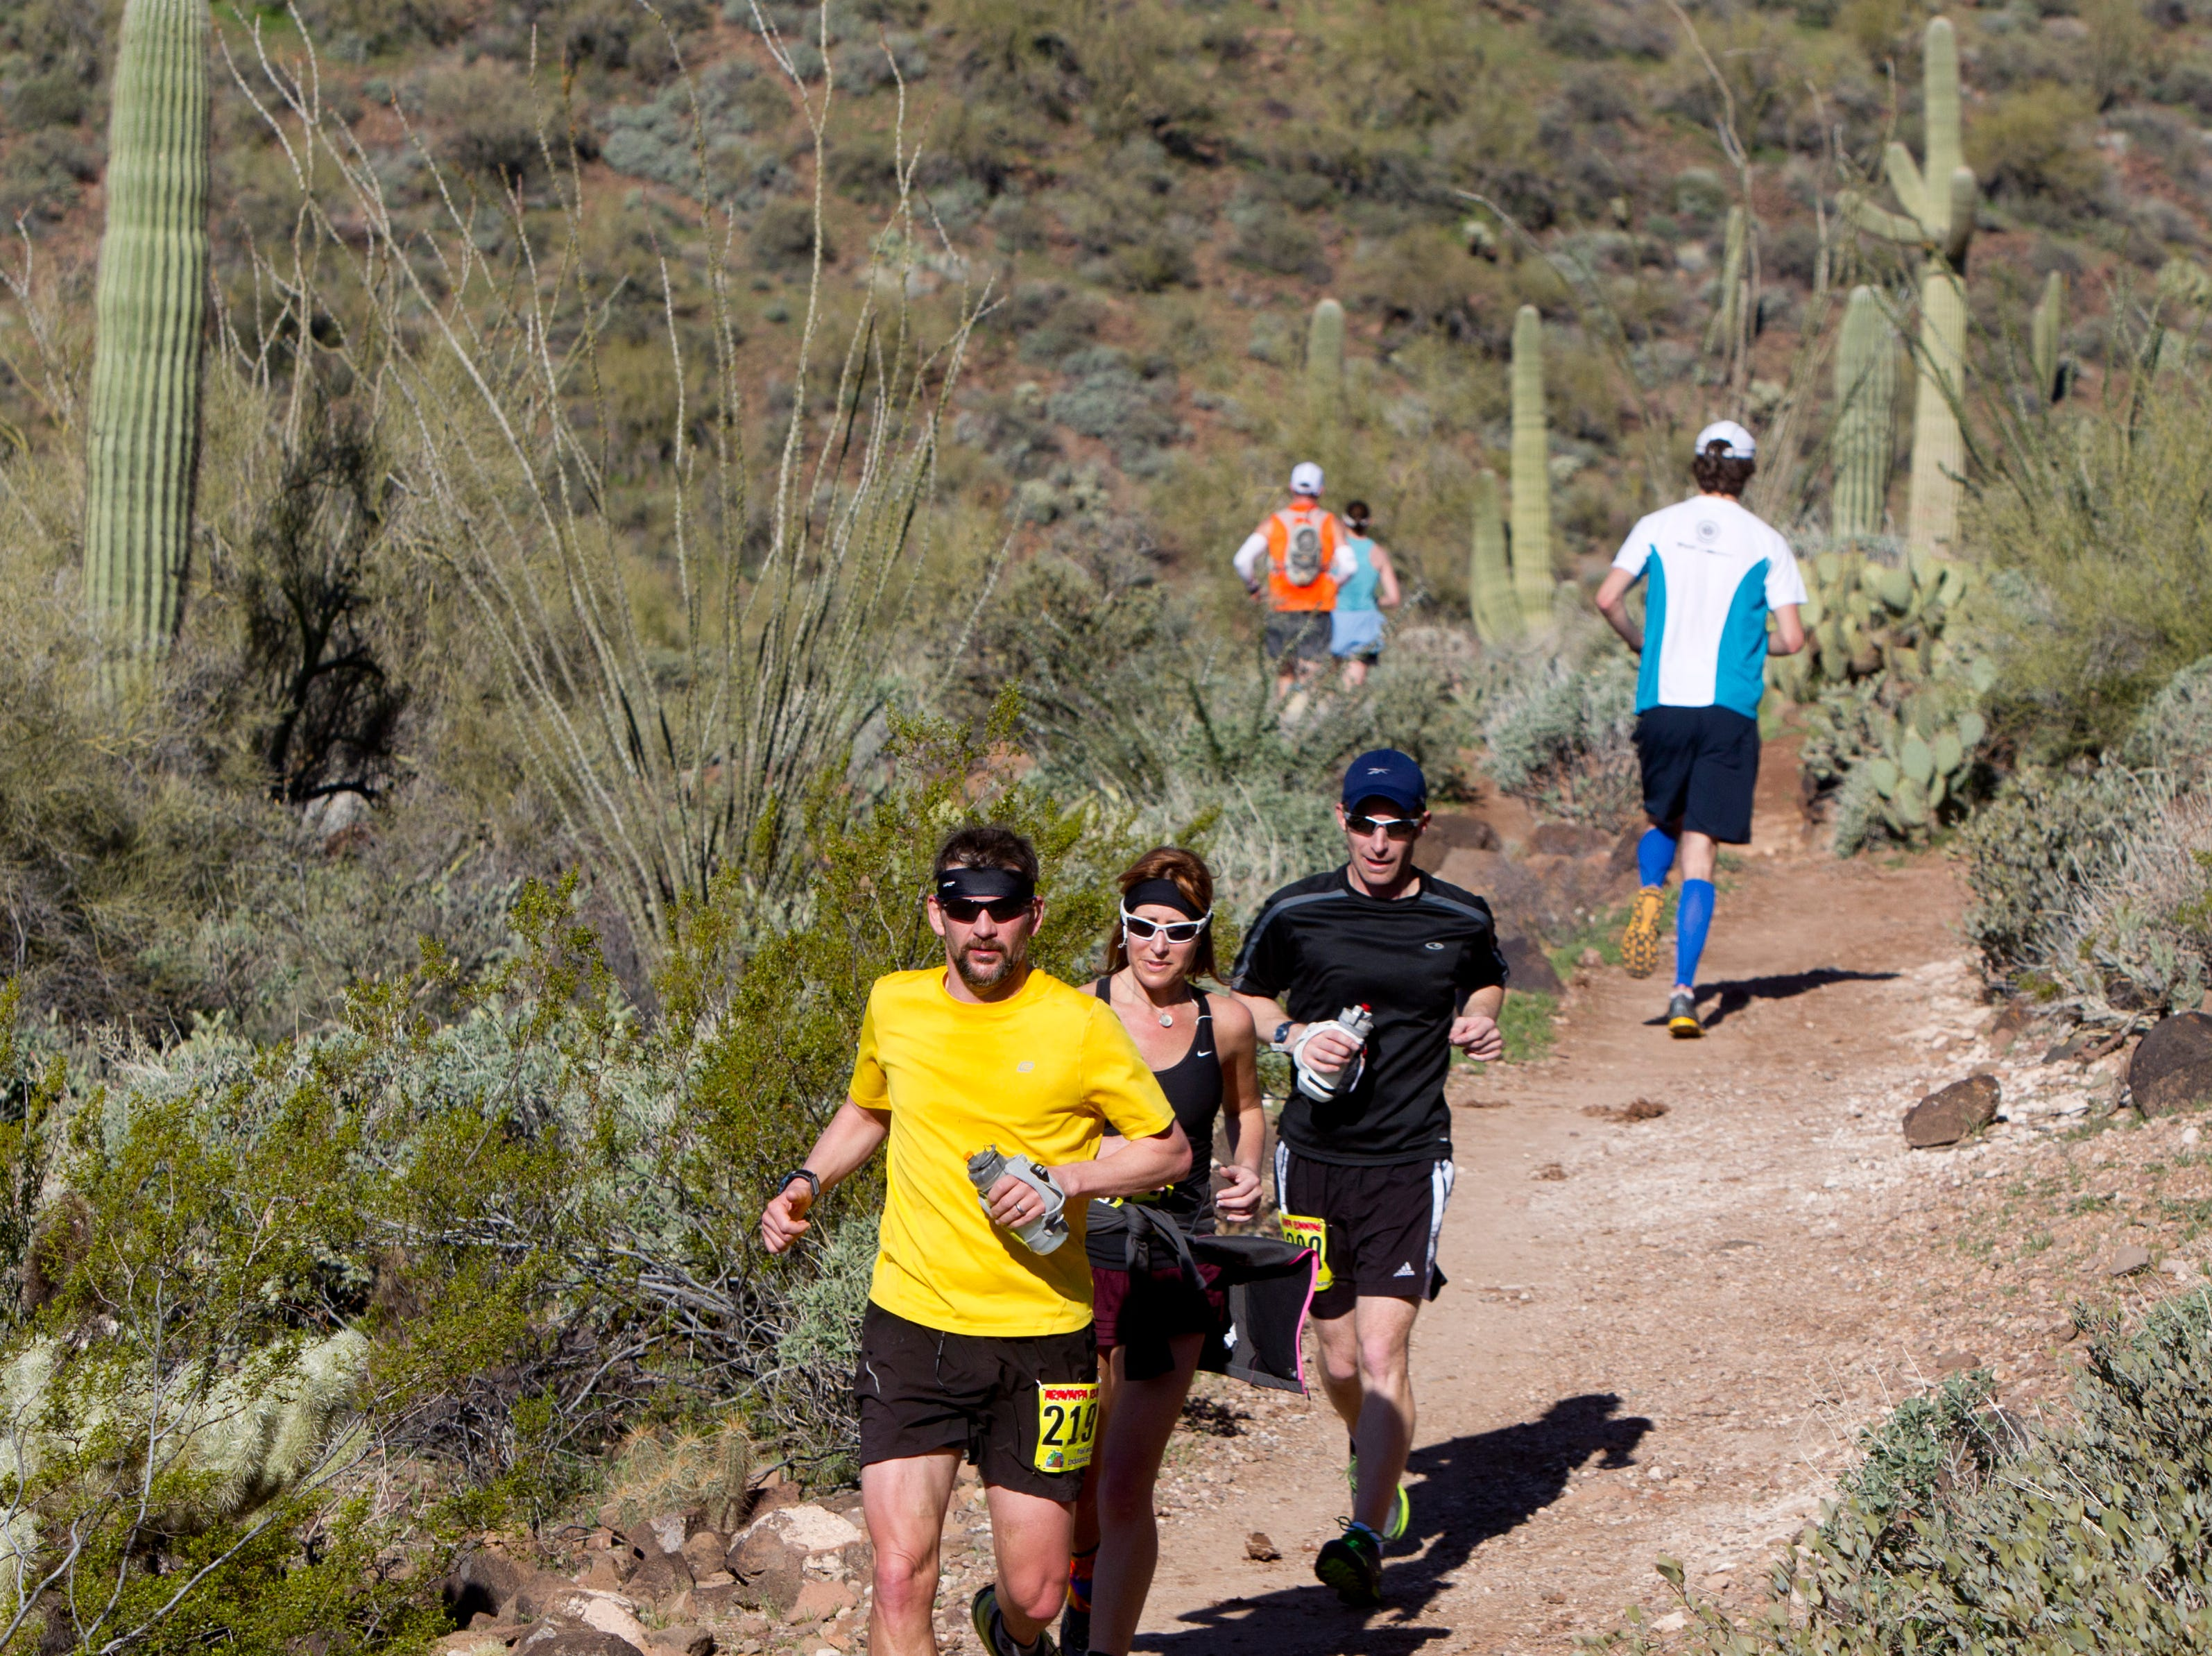 Jon Aardal, 41, of Colorado, (yellow shirt), Nadine Hamilton, 38, of Pennsylvania, and Craig Branaghan, 34, of Colorado, compete in the Aravaipa Running Elephant Mountain Desert Runner Trail Series at Cave Creek Regional Park in 2013.